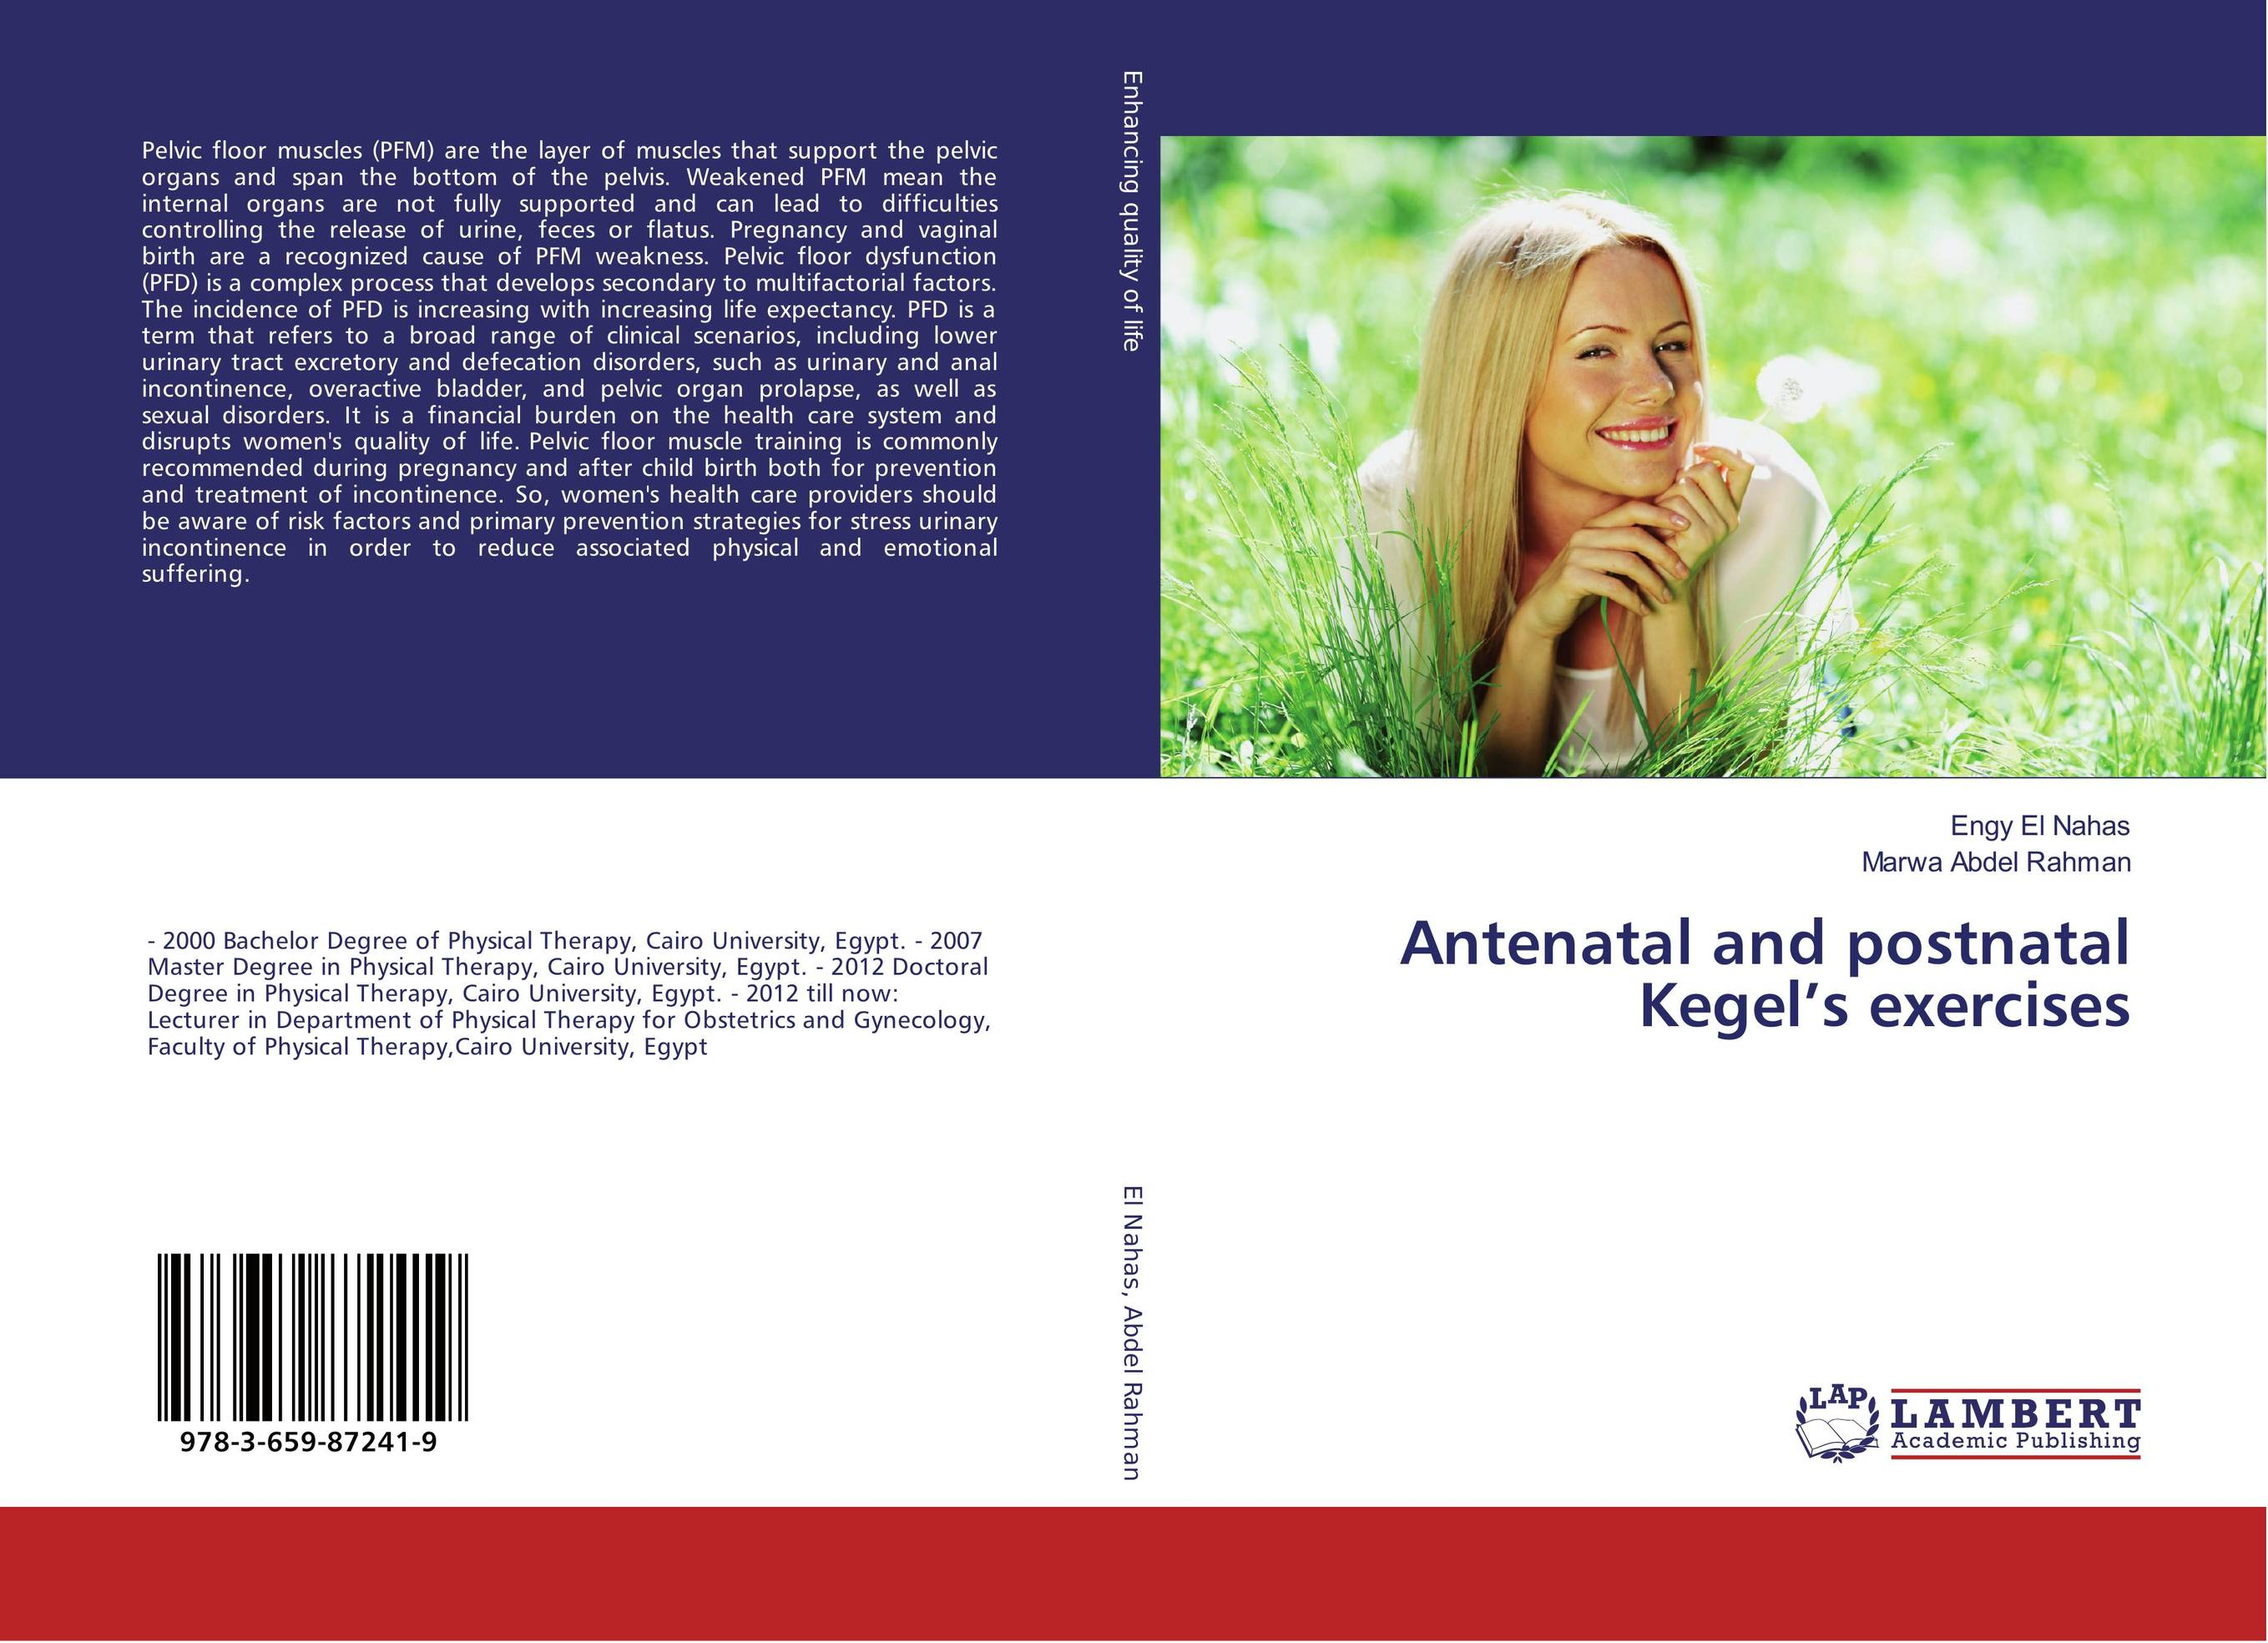 Antenatal and postnatal Kegel's exercises jarrow probiotics for women gynecological vaginal urinary tract health